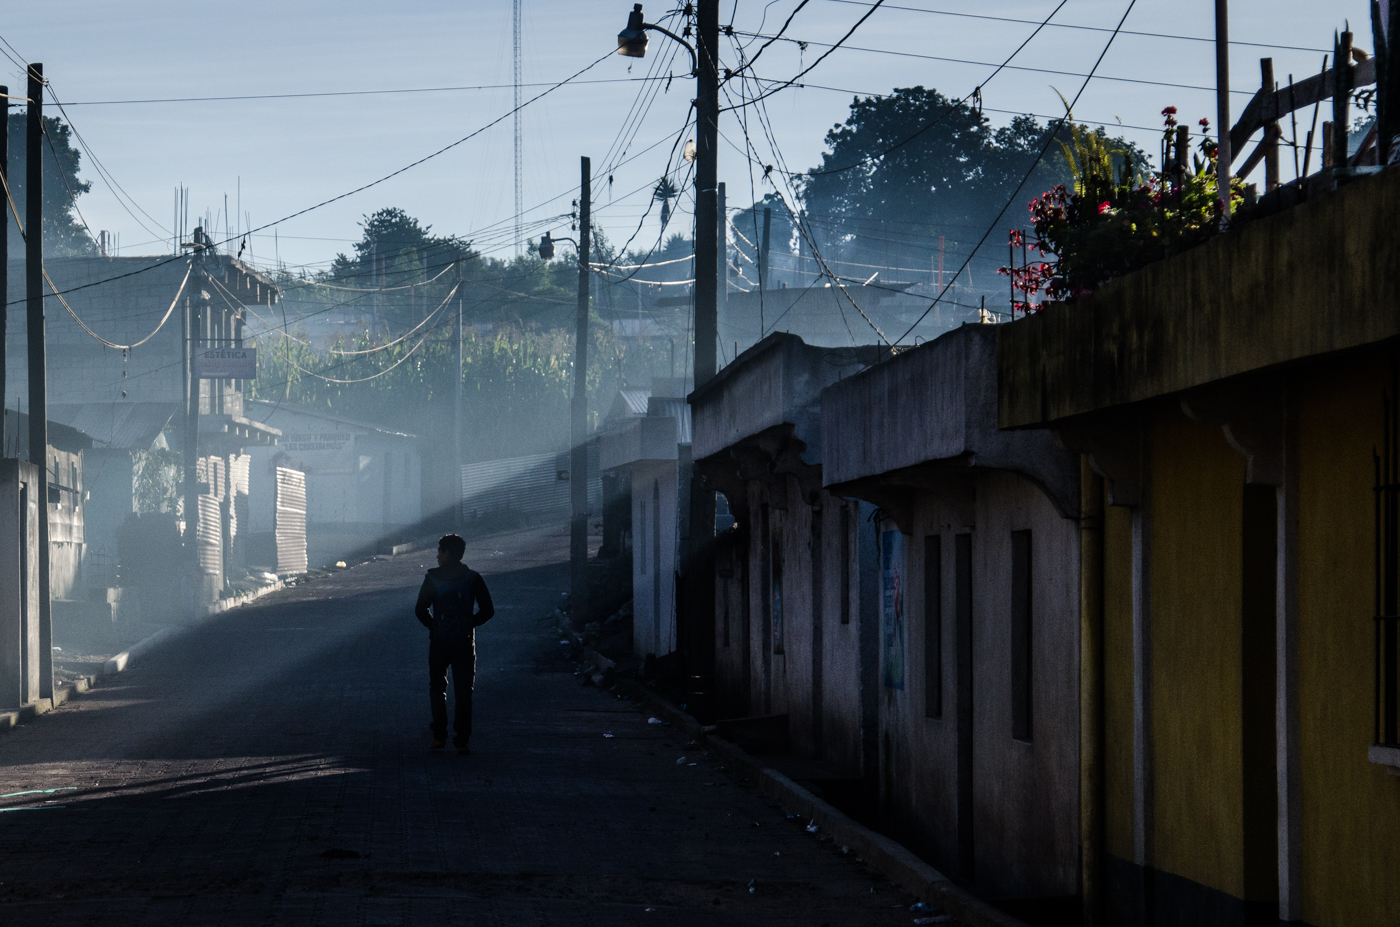 A man walks through the haze of early morning cookfires in San Pablo.